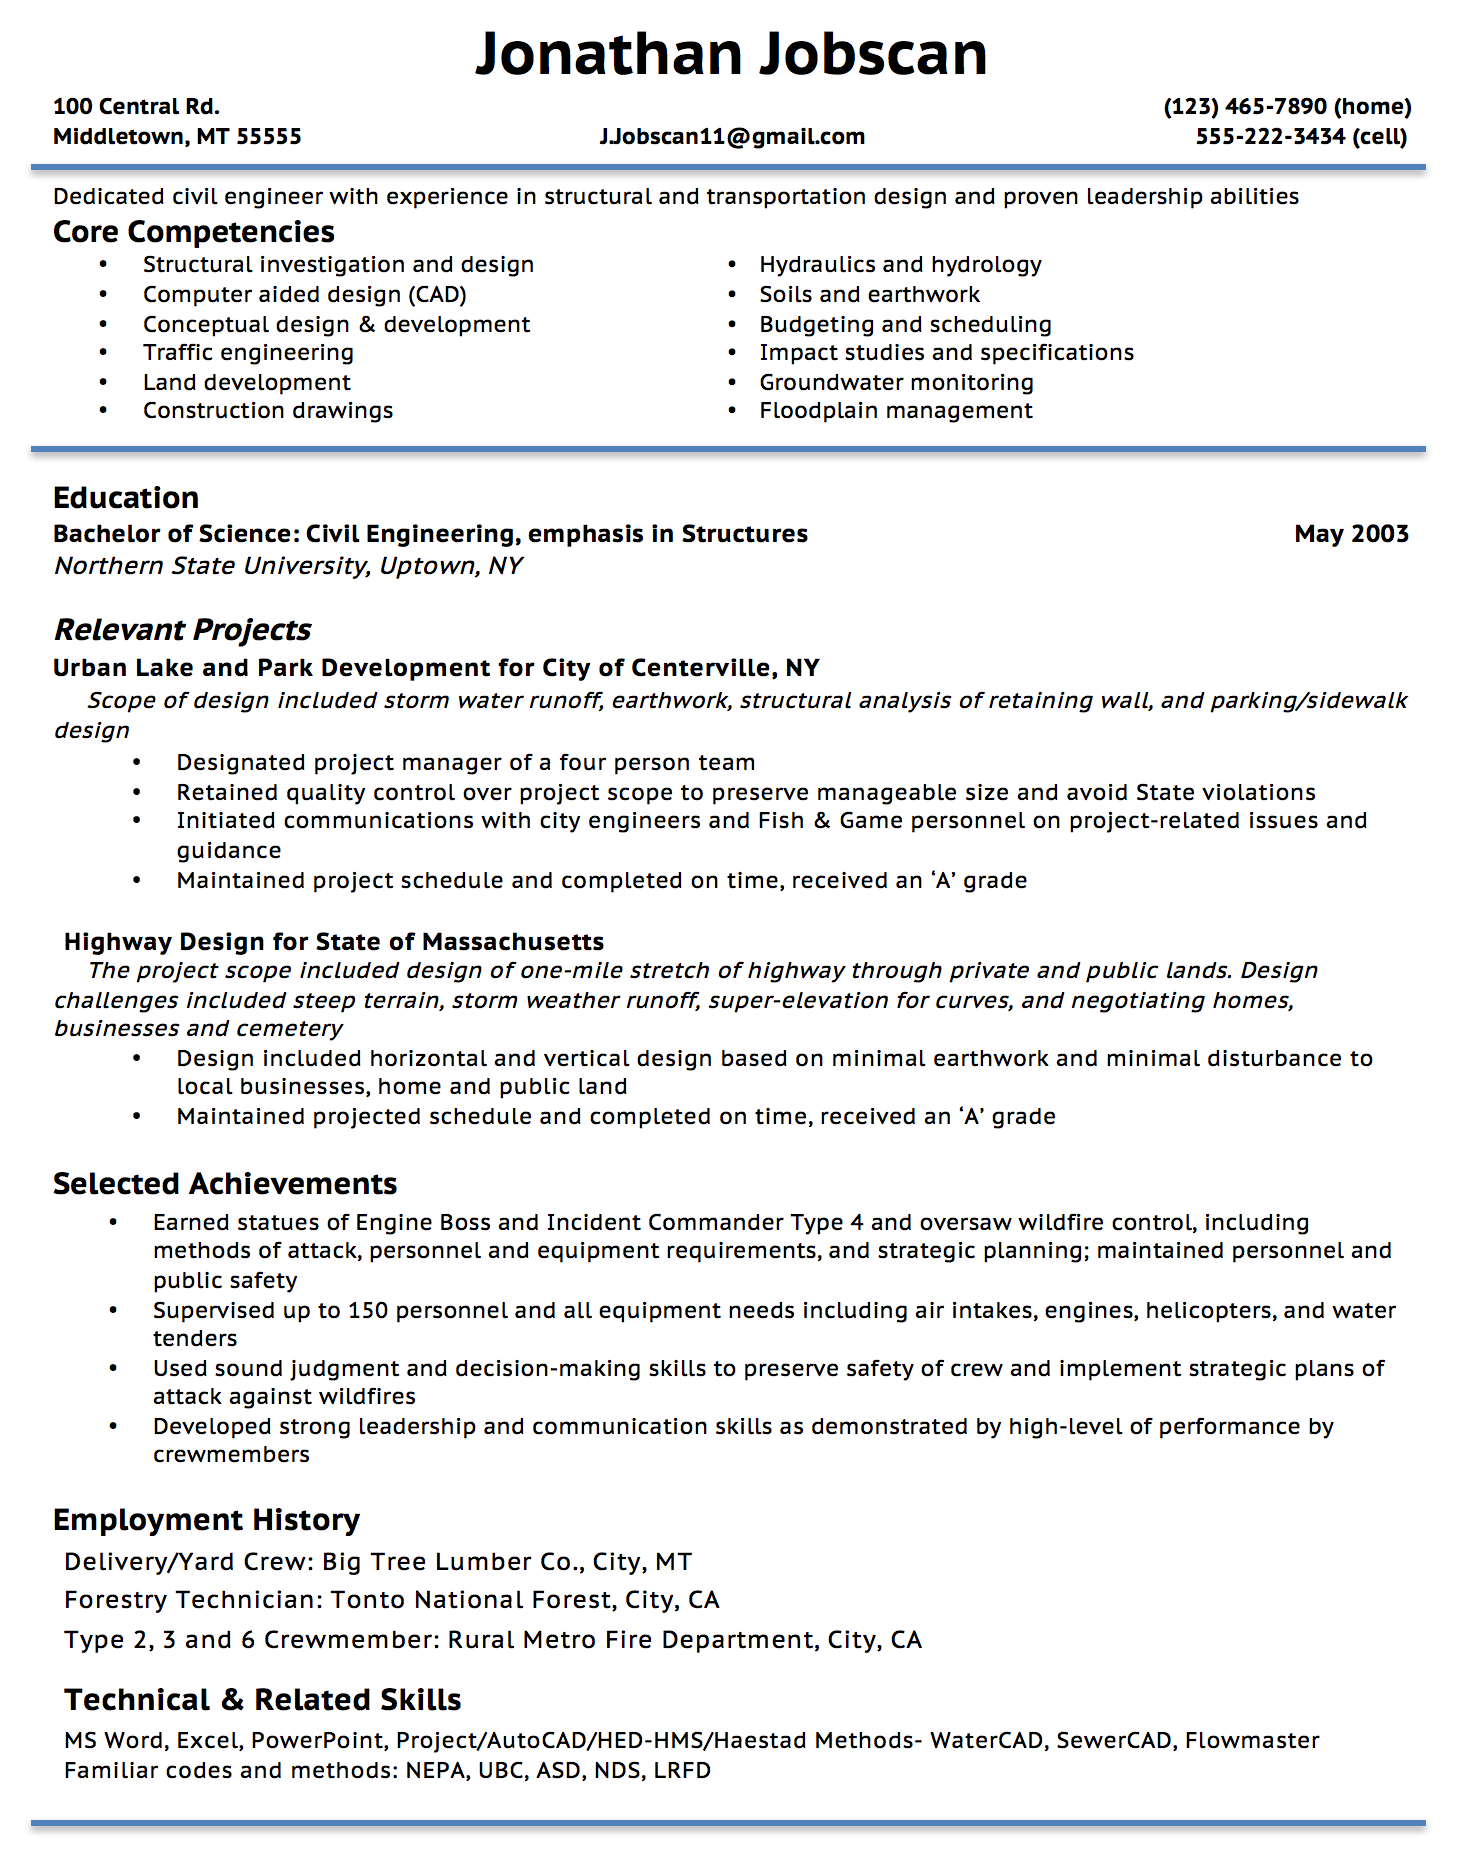 Opposenewapstandardsus  Winsome Resume Writing Guide  Jobscan With Hot Example Of A Functional Resume Format With Comely Substitute Teacher Resume Example Also Federal Government Resume Sample In Addition How To Format References On Resume And Coaching Resumes As Well As How To Make A Video Resume Additionally How To Write My Resume From Jobscanco With Opposenewapstandardsus  Hot Resume Writing Guide  Jobscan With Comely Example Of A Functional Resume Format And Winsome Substitute Teacher Resume Example Also Federal Government Resume Sample In Addition How To Format References On Resume From Jobscanco